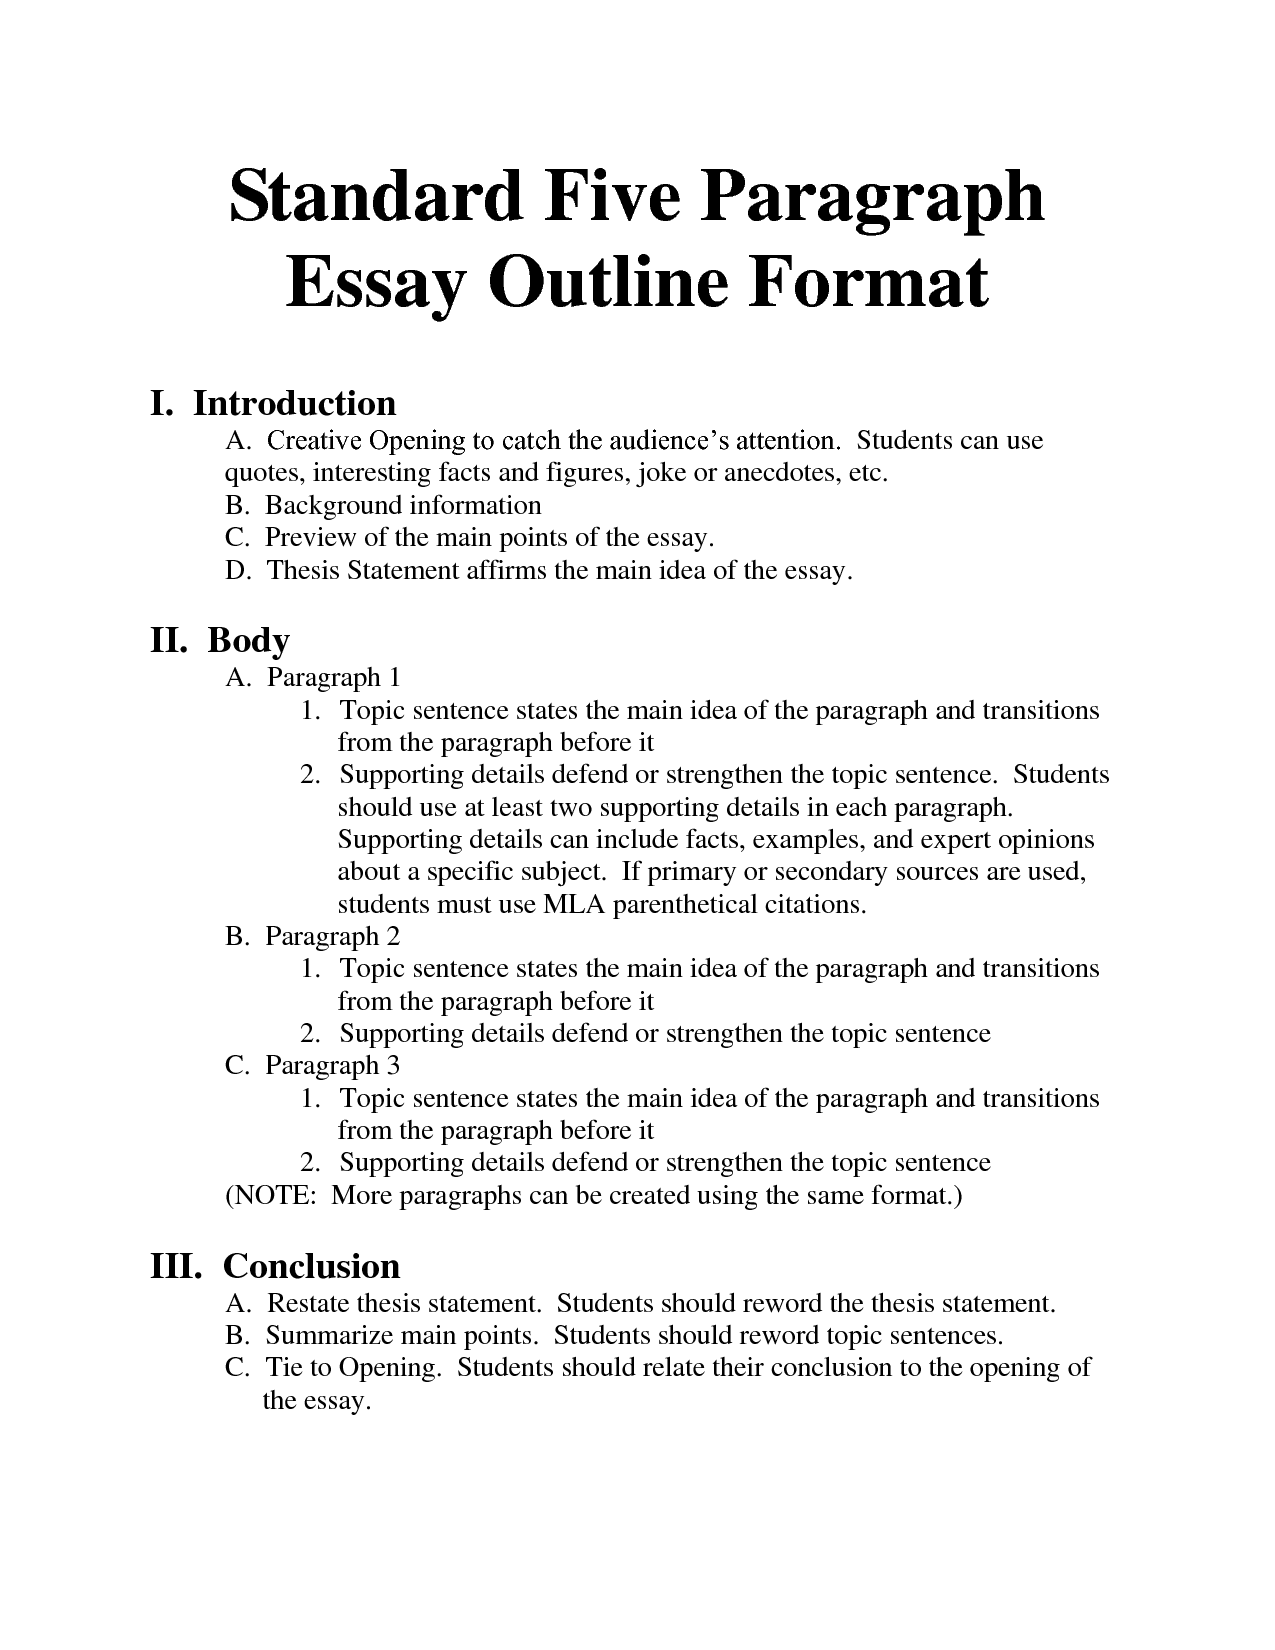 Outline format for writing papers